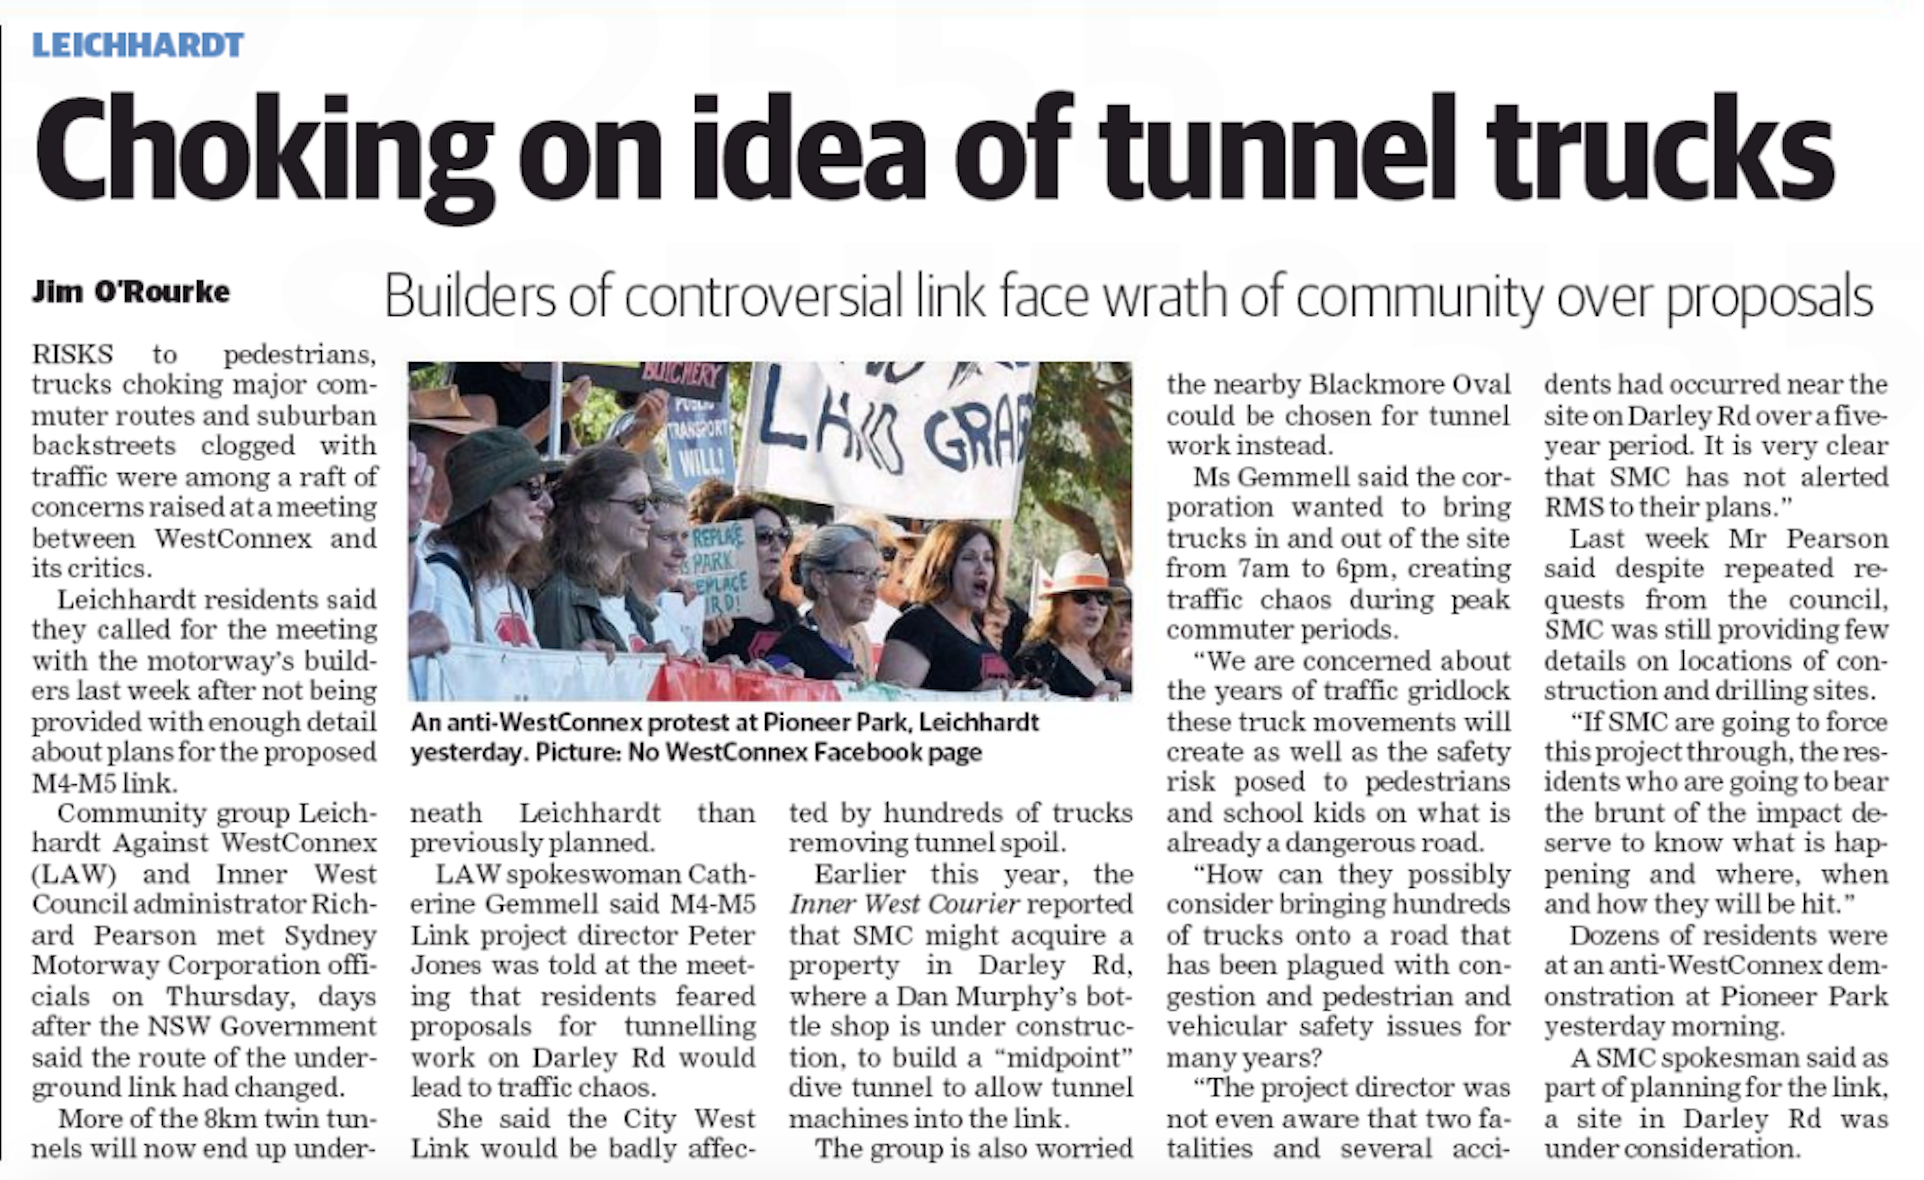 Inner West Courier story on LAW meeting